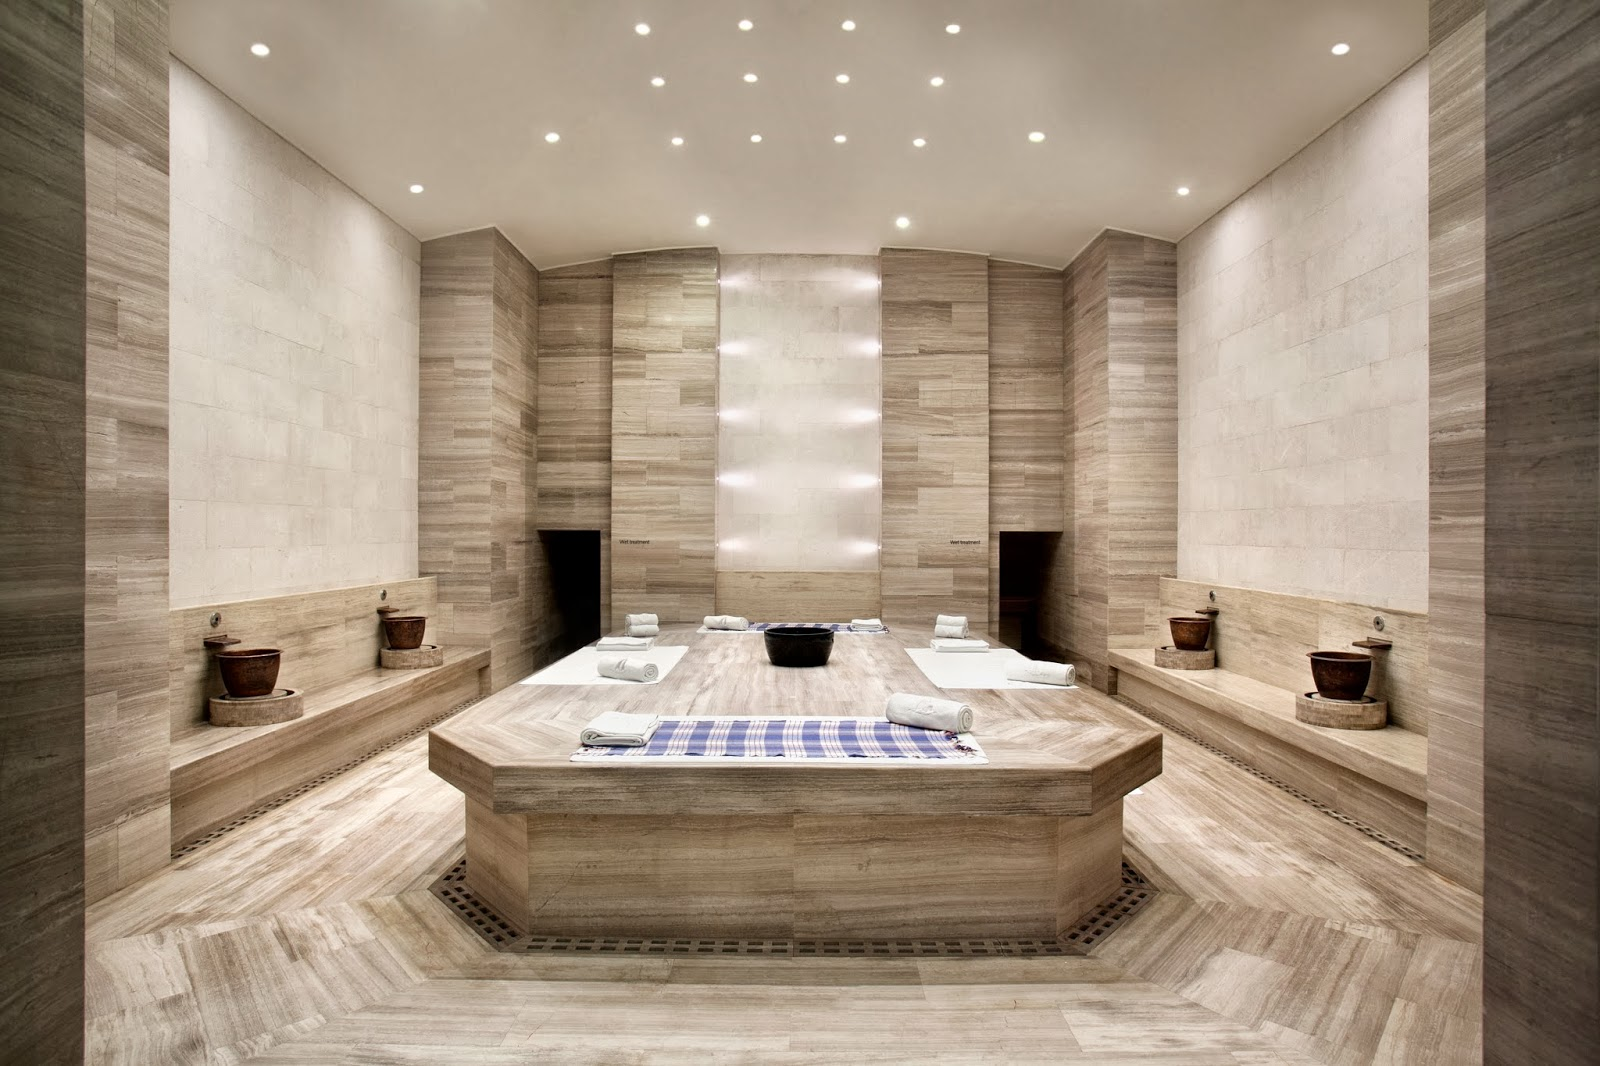 Combiné Spa Sauna Hammam The Silver Kick Diaries An Experience Straight From Turkey